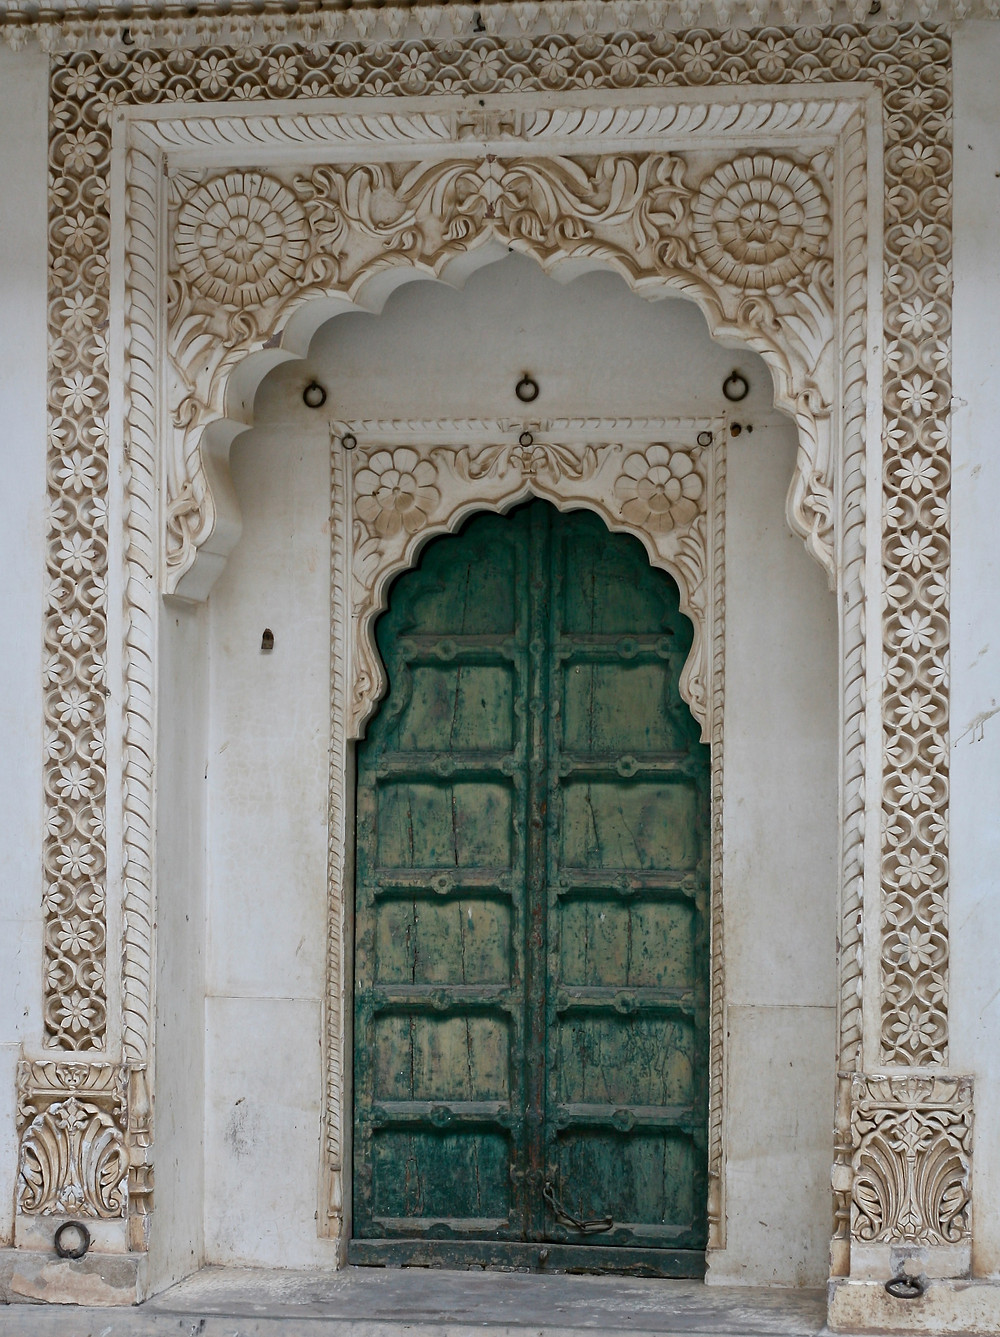 Where my obsession began, with a scalloped green door surrounded by white carved marble in India.